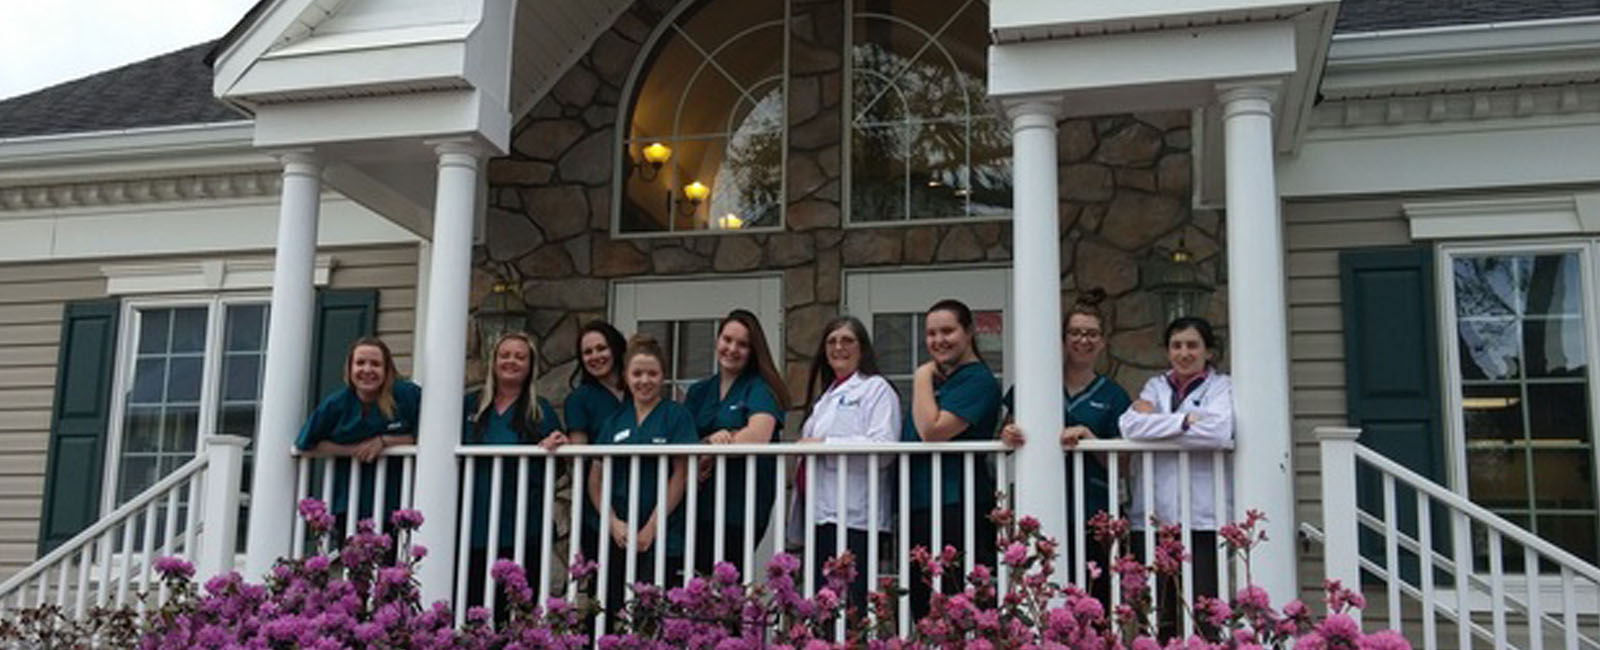 Homepage Team Picture of VCA Healthy Paws Animal Hospital